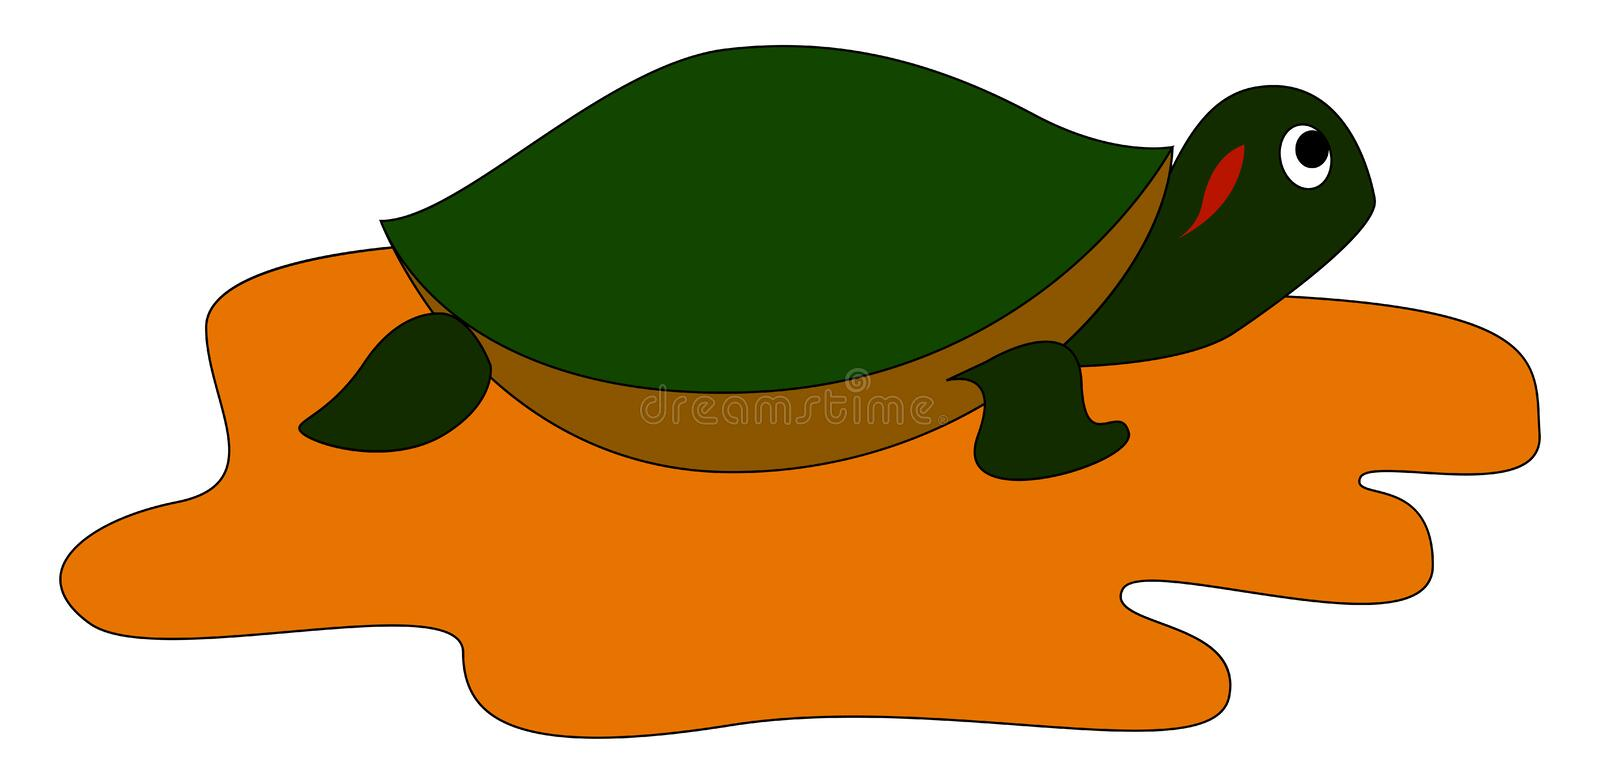 Clipart - Turtle - Slow Turtle Clipart - Png Download (#5869342) - PikPng